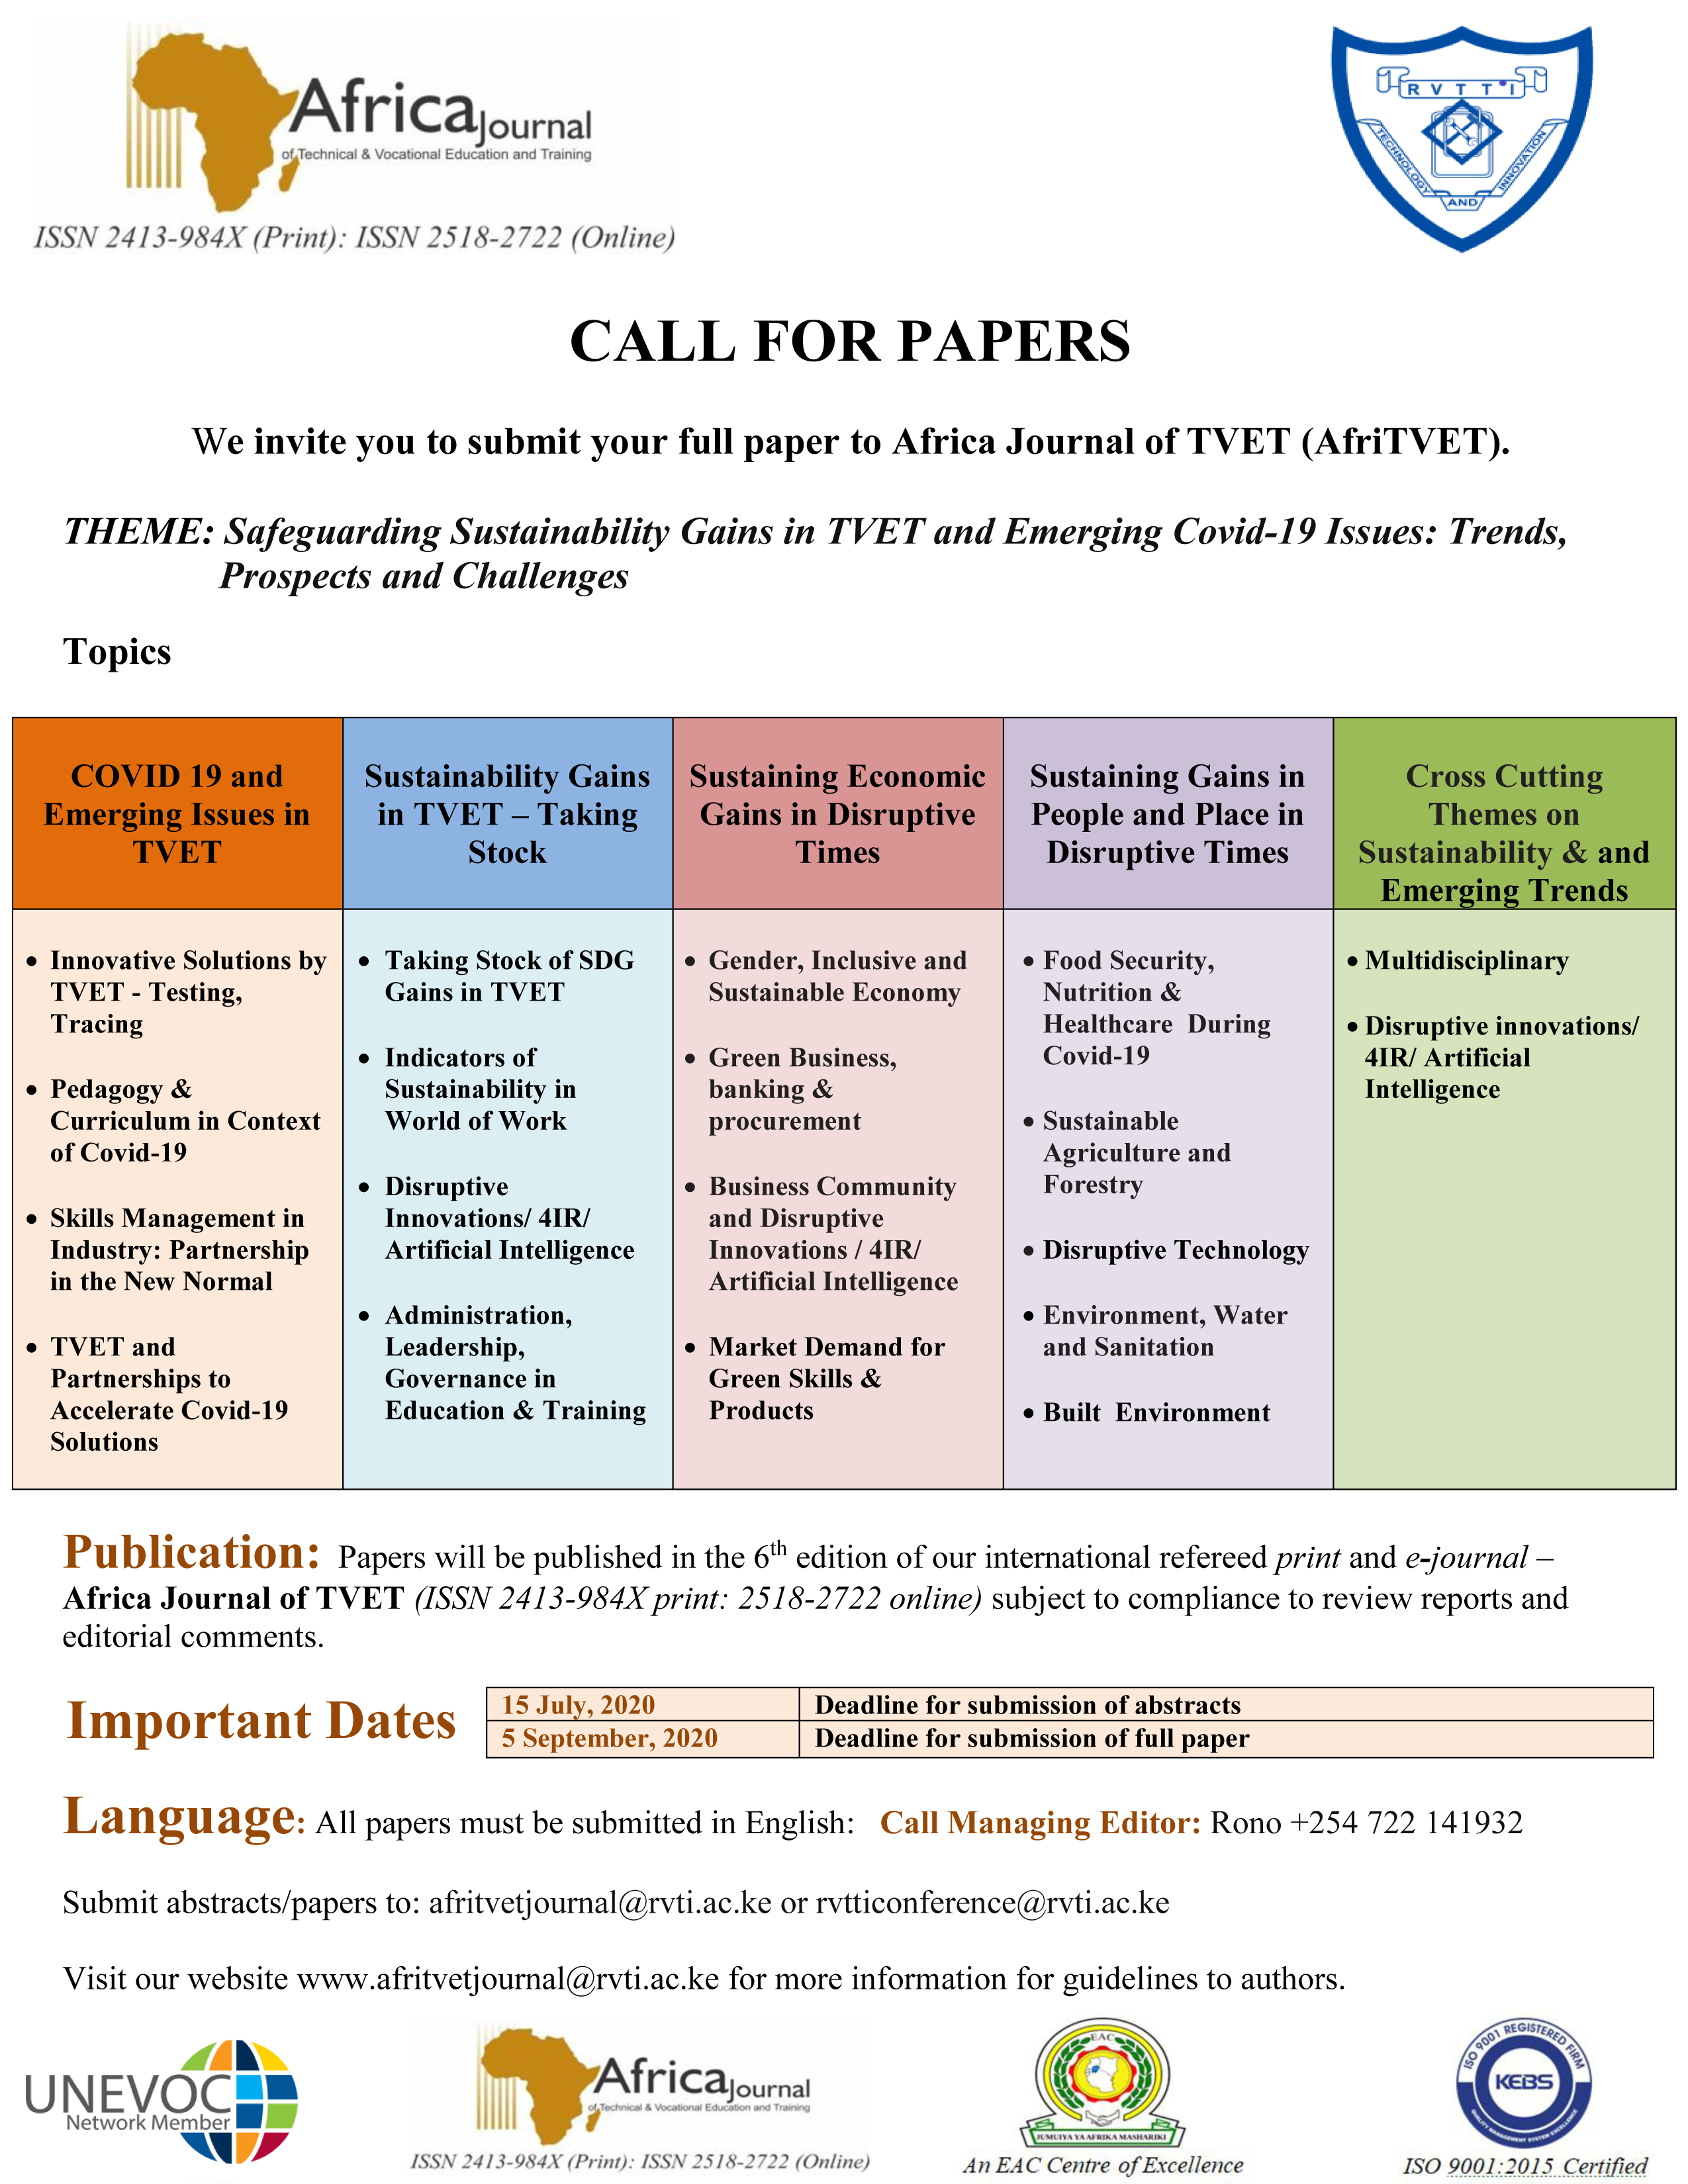 CALL_FOR_PAPERS_2020.png